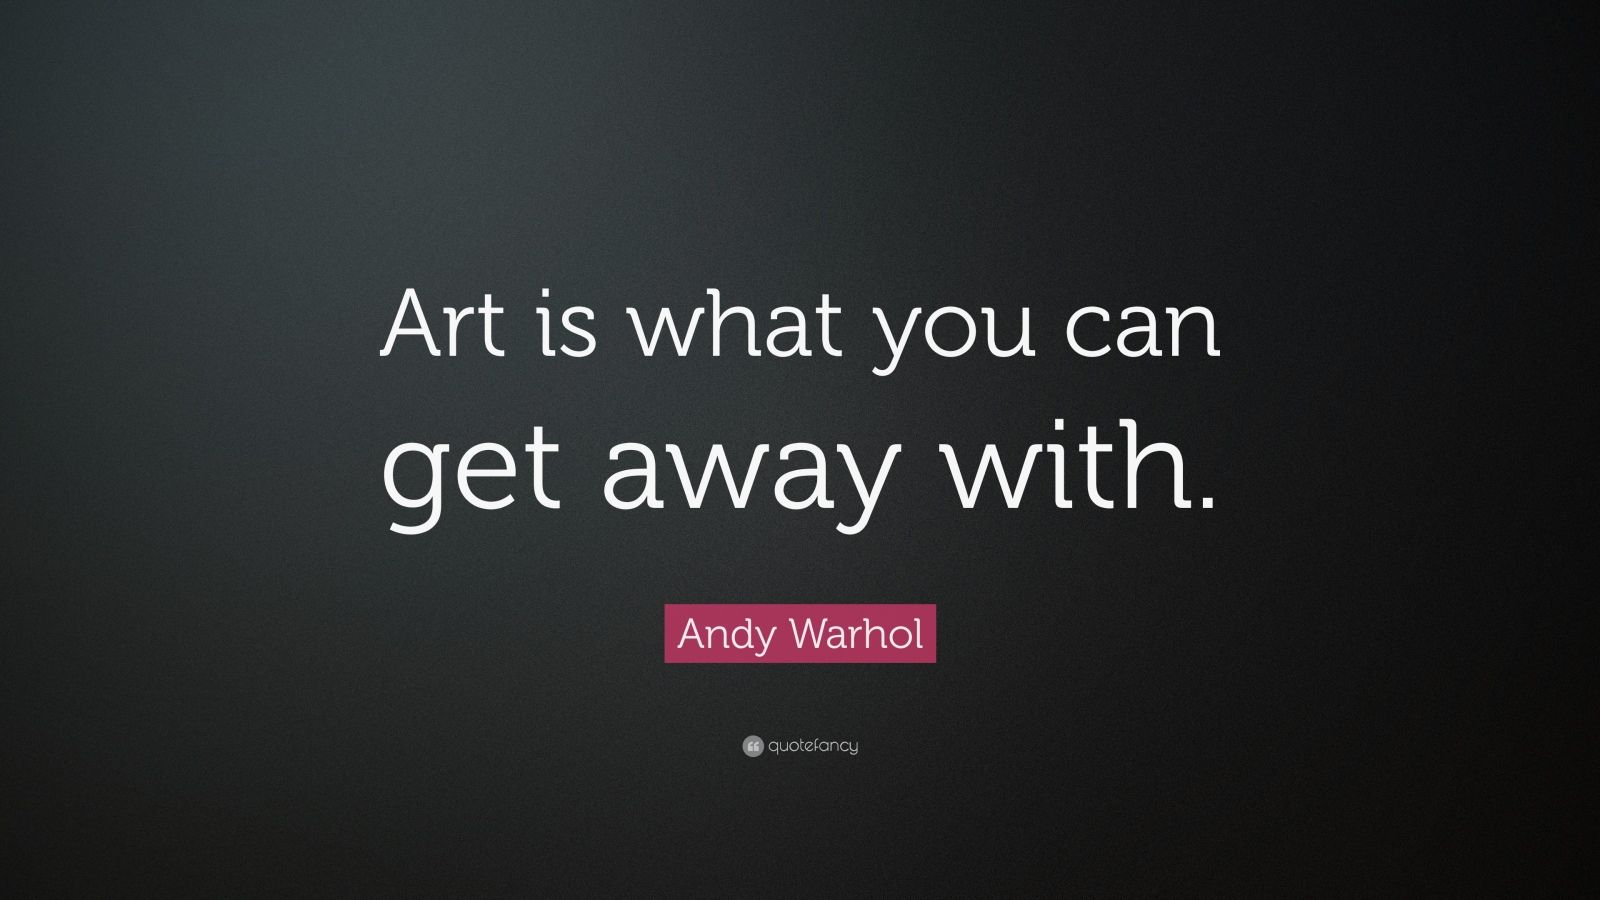 andy warhol quotes - HD 1600×900